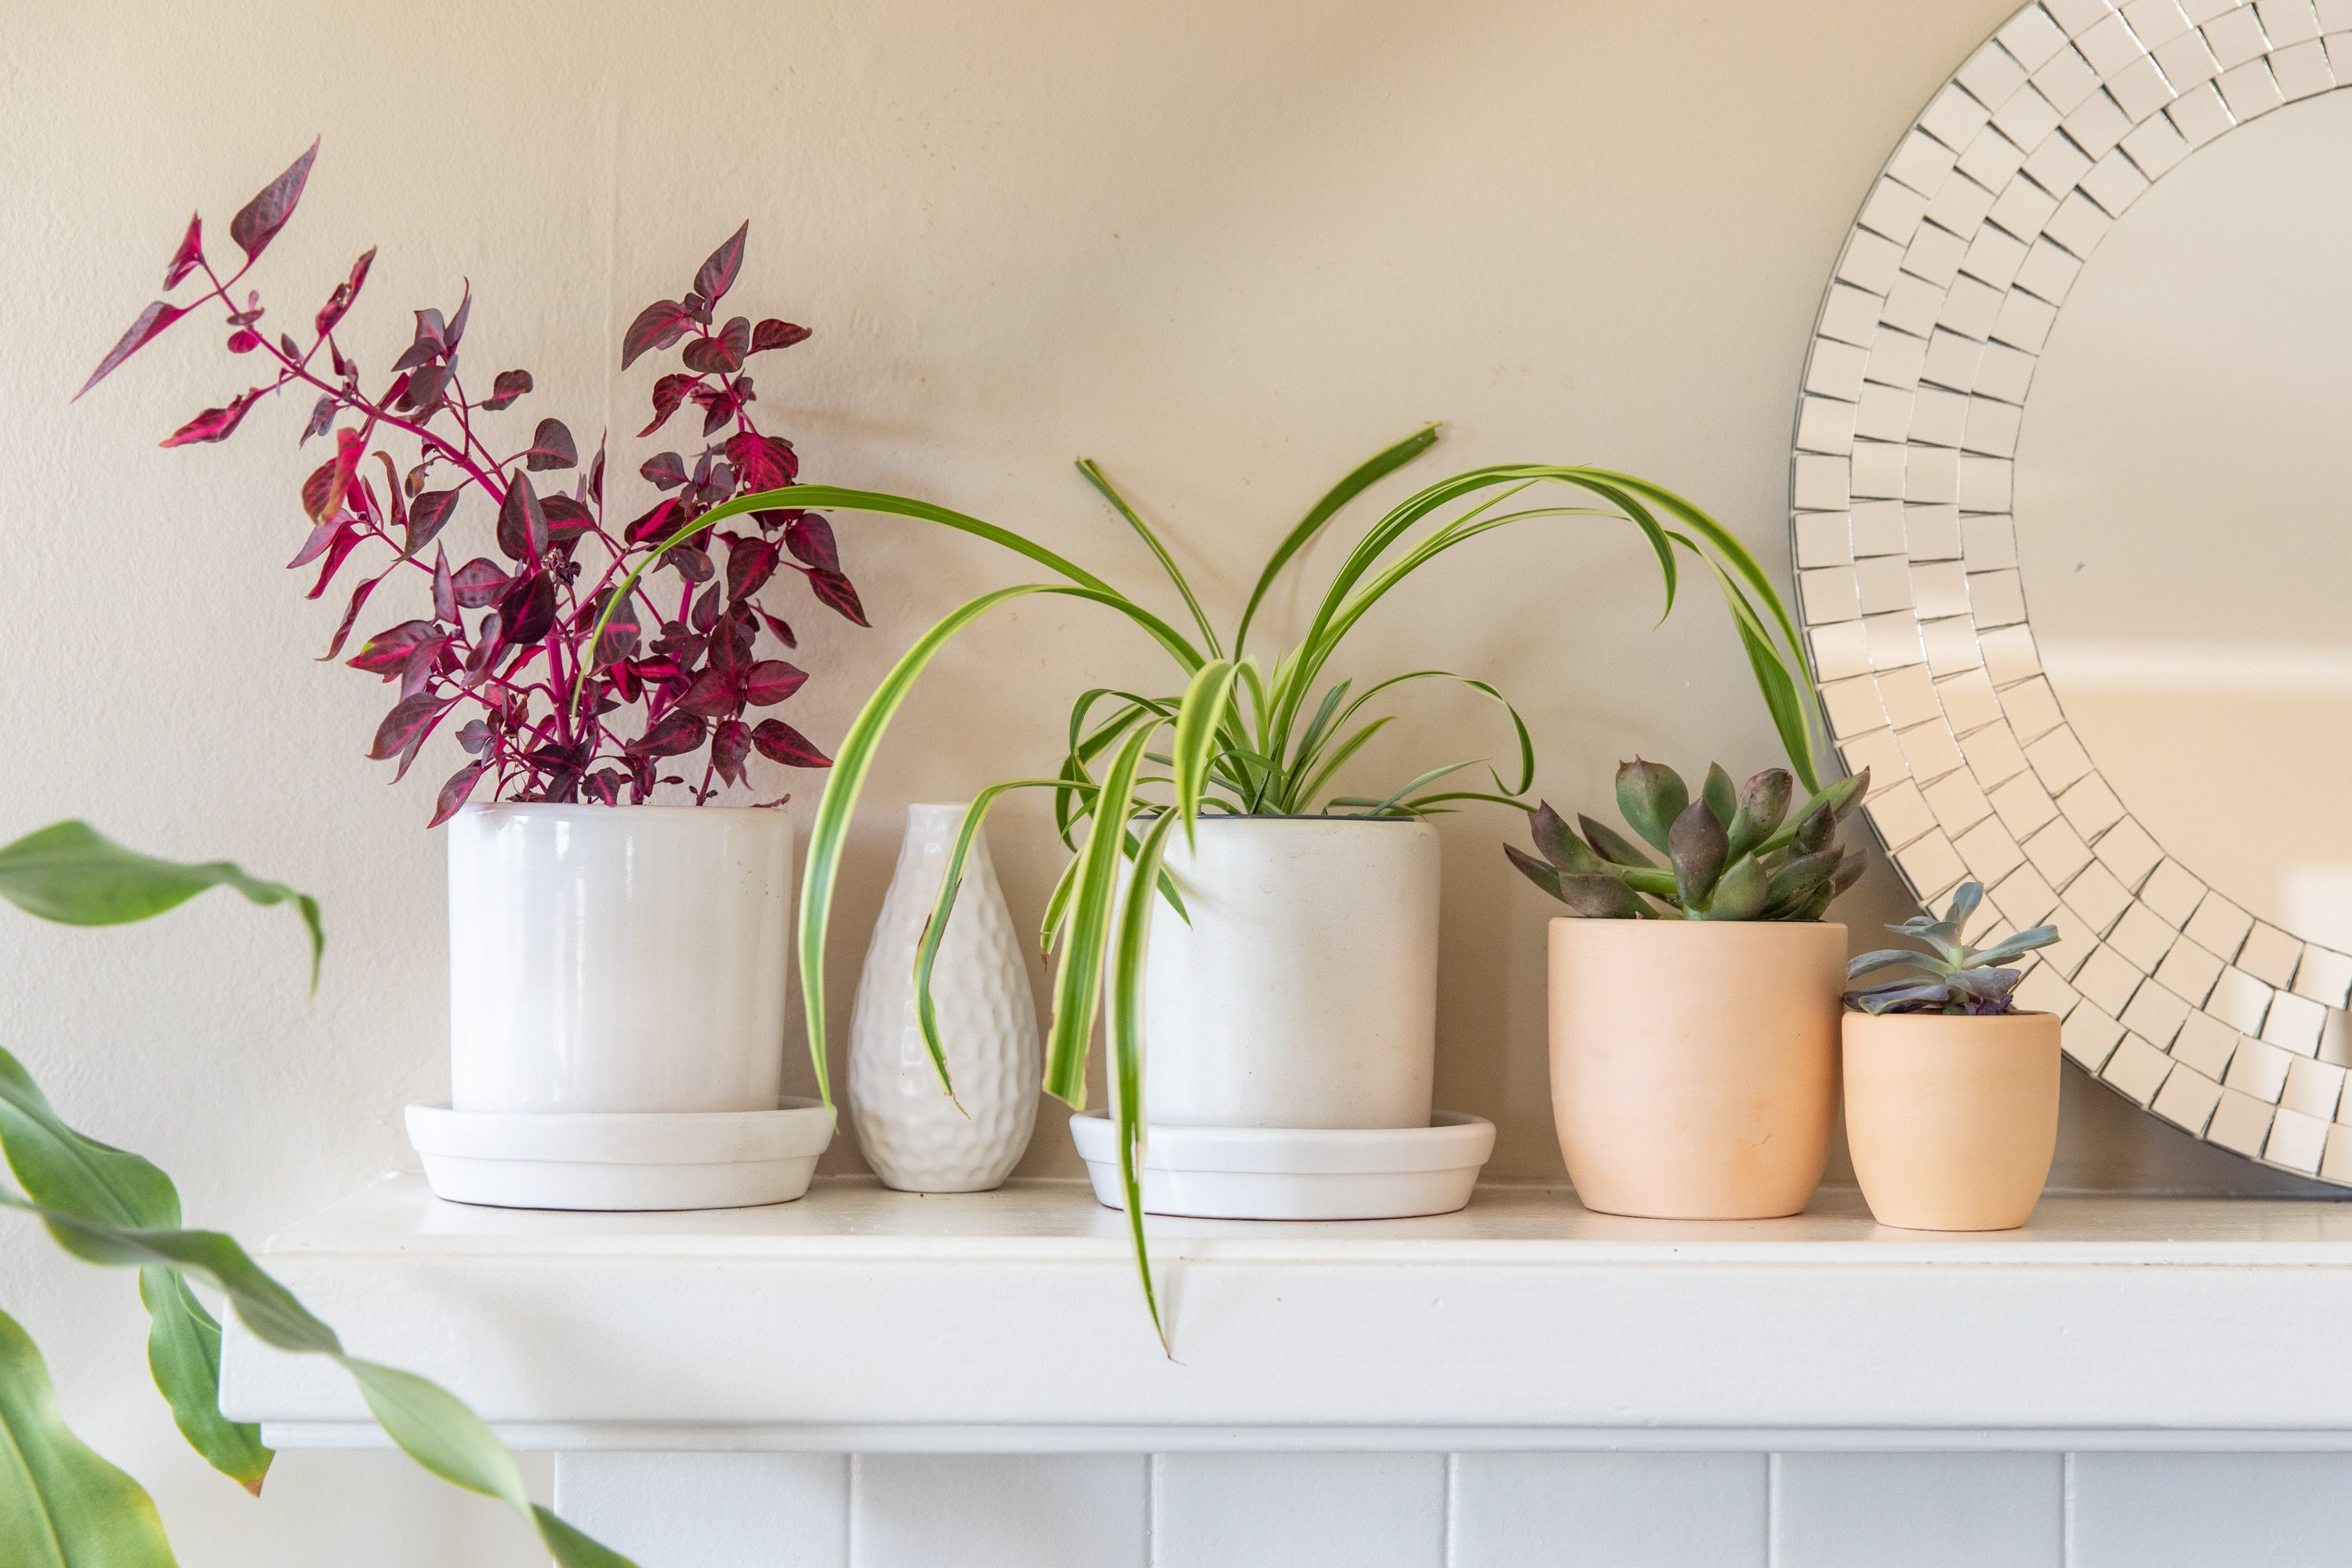 32 Great Ways To Decorate With Plants